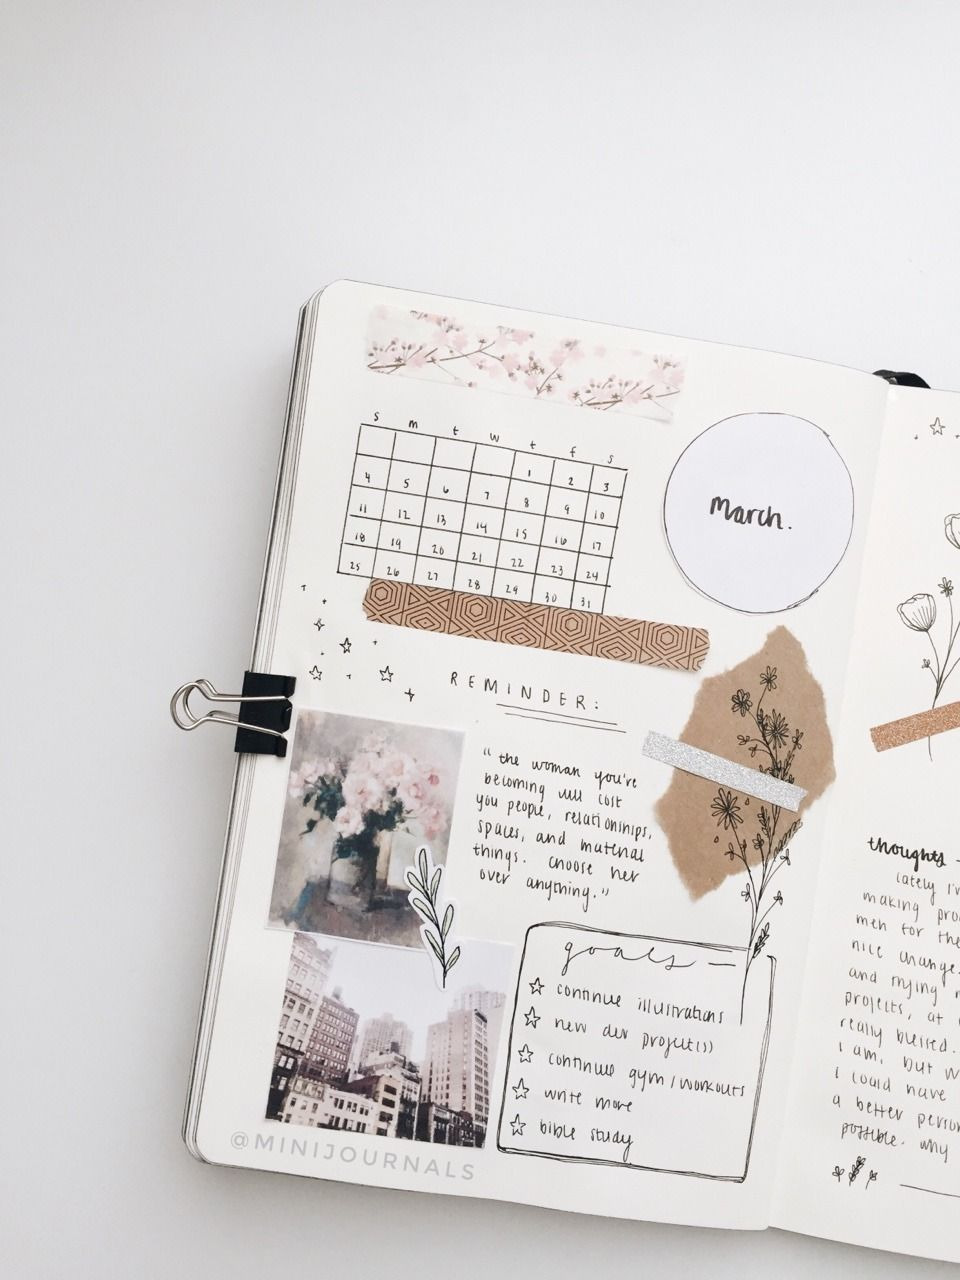 Mini Journals Easy Like Sunday Afternoon Bullet Journal Aesthetic Bullet Journal Ideas Pages Bullet Journal Art